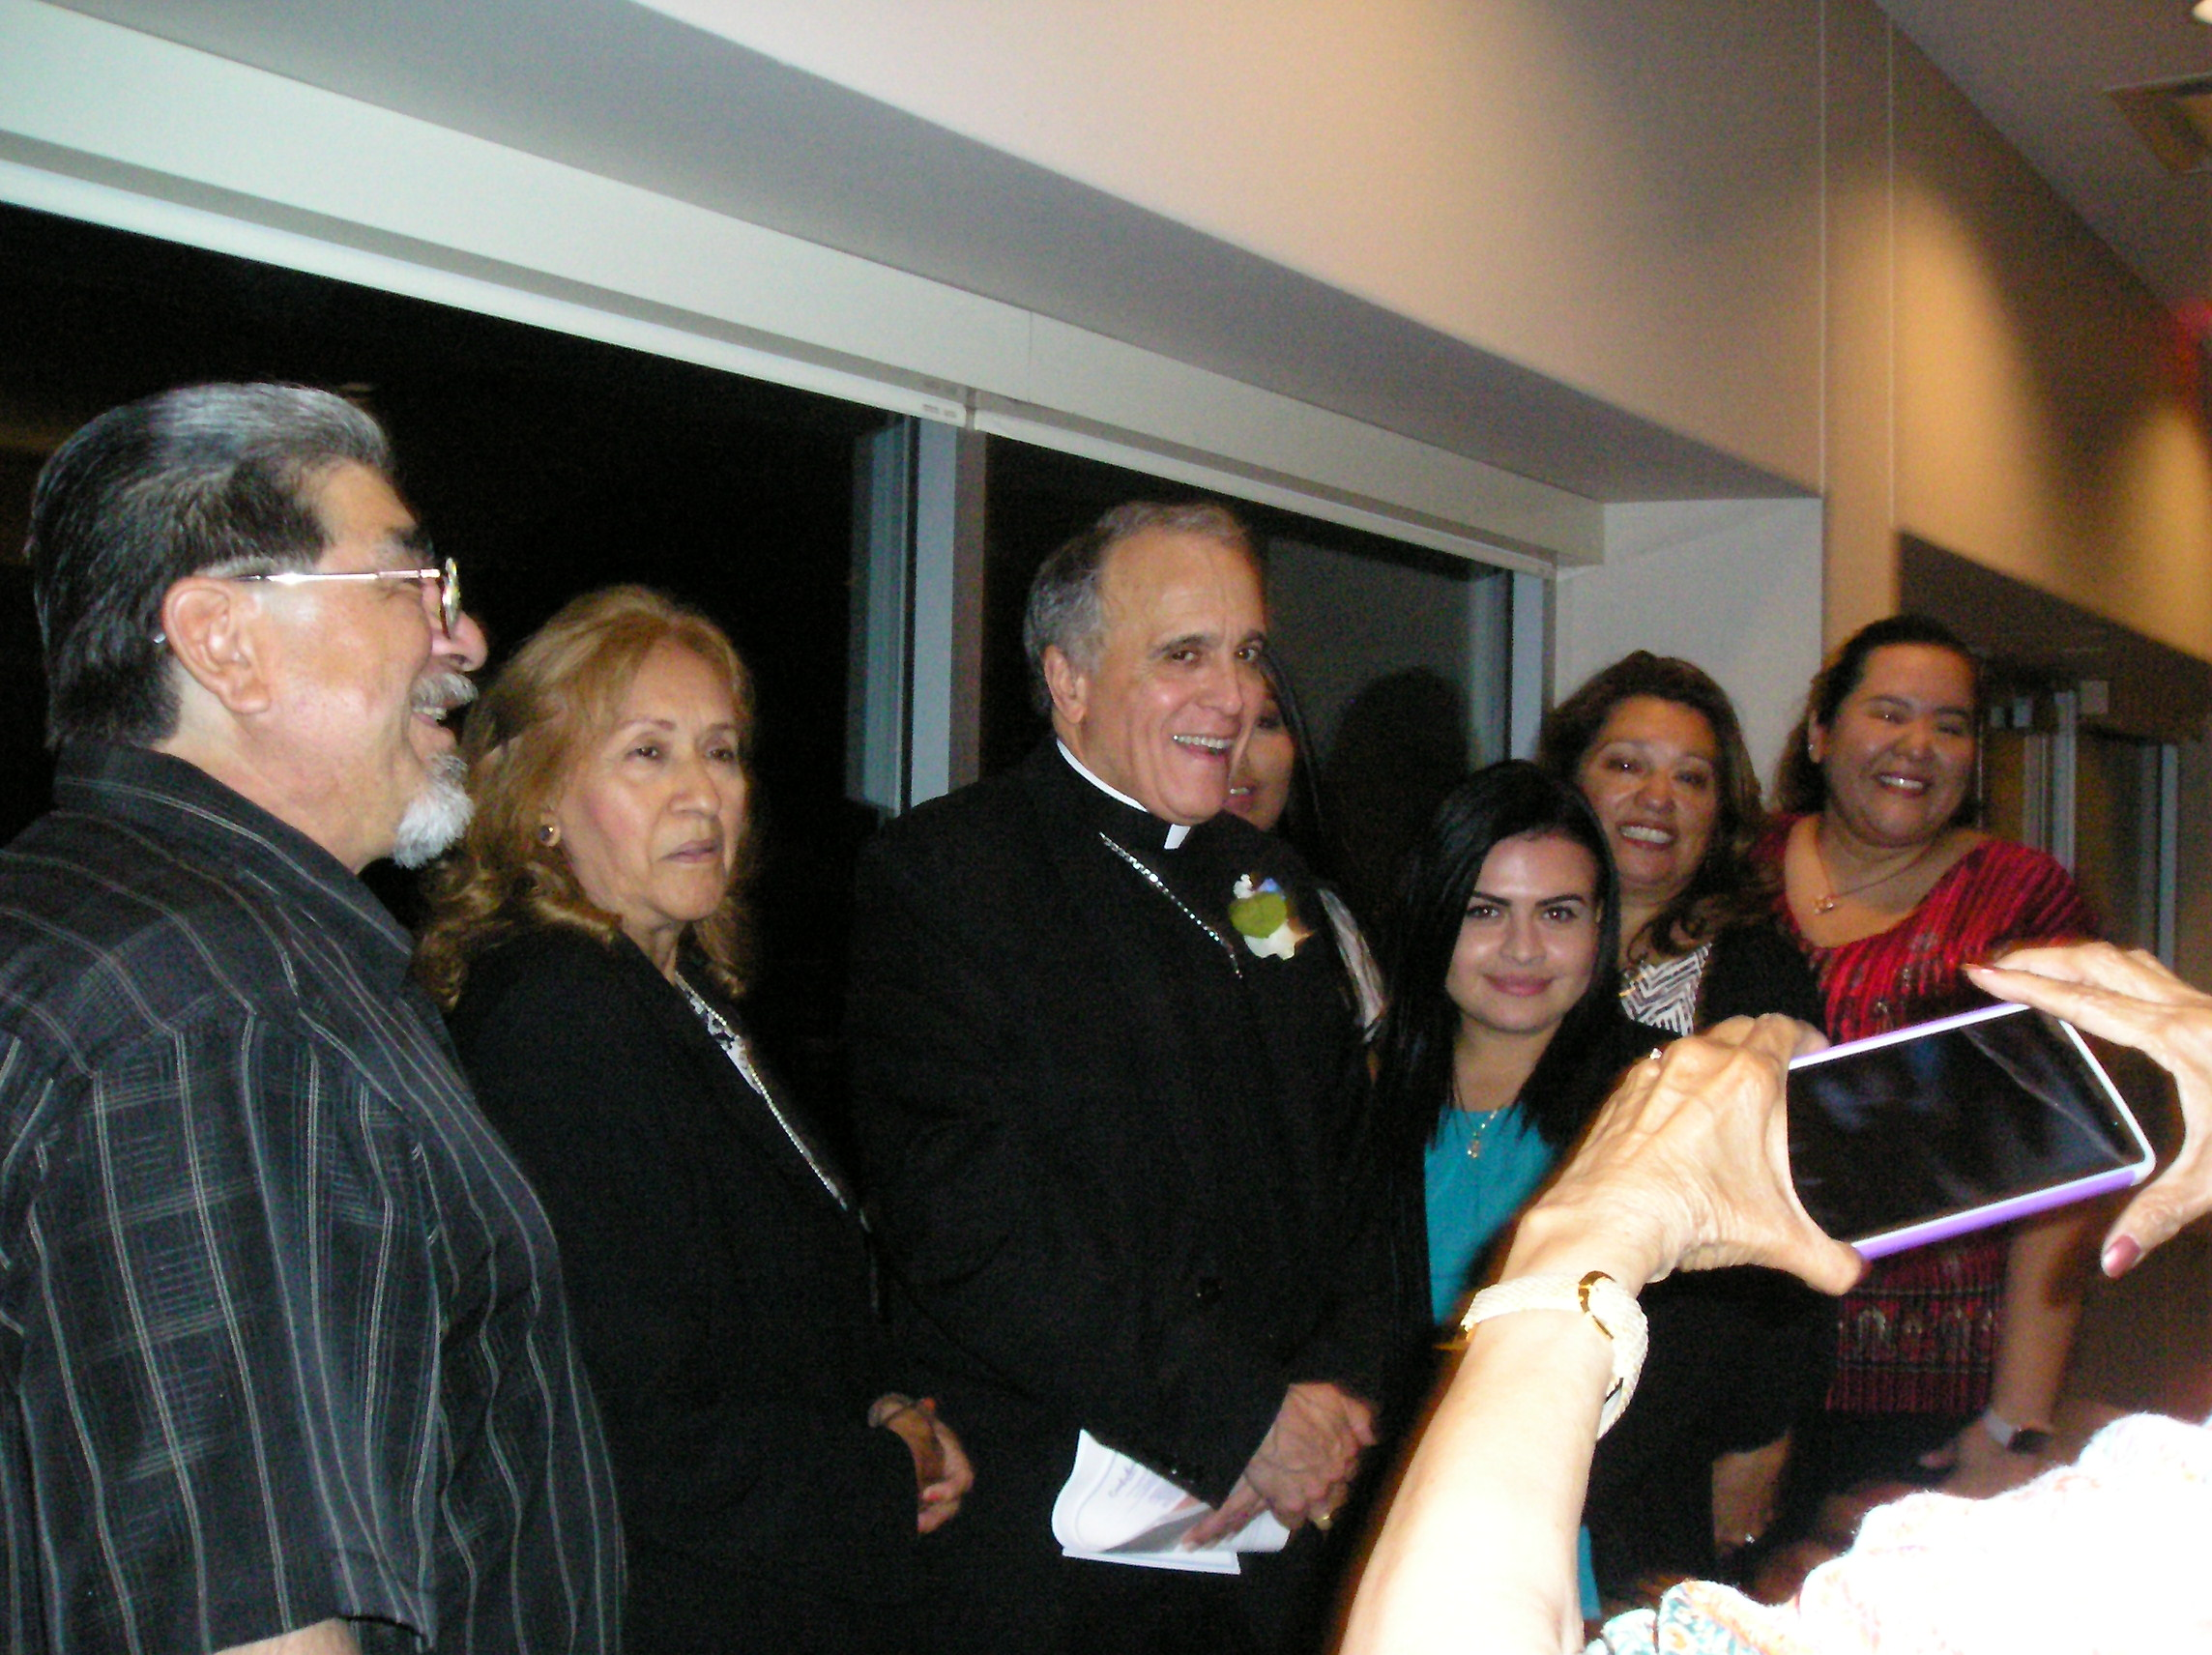 1610_-_TMO_-_Celebration_with_Cardinal_DiNardo.JPG